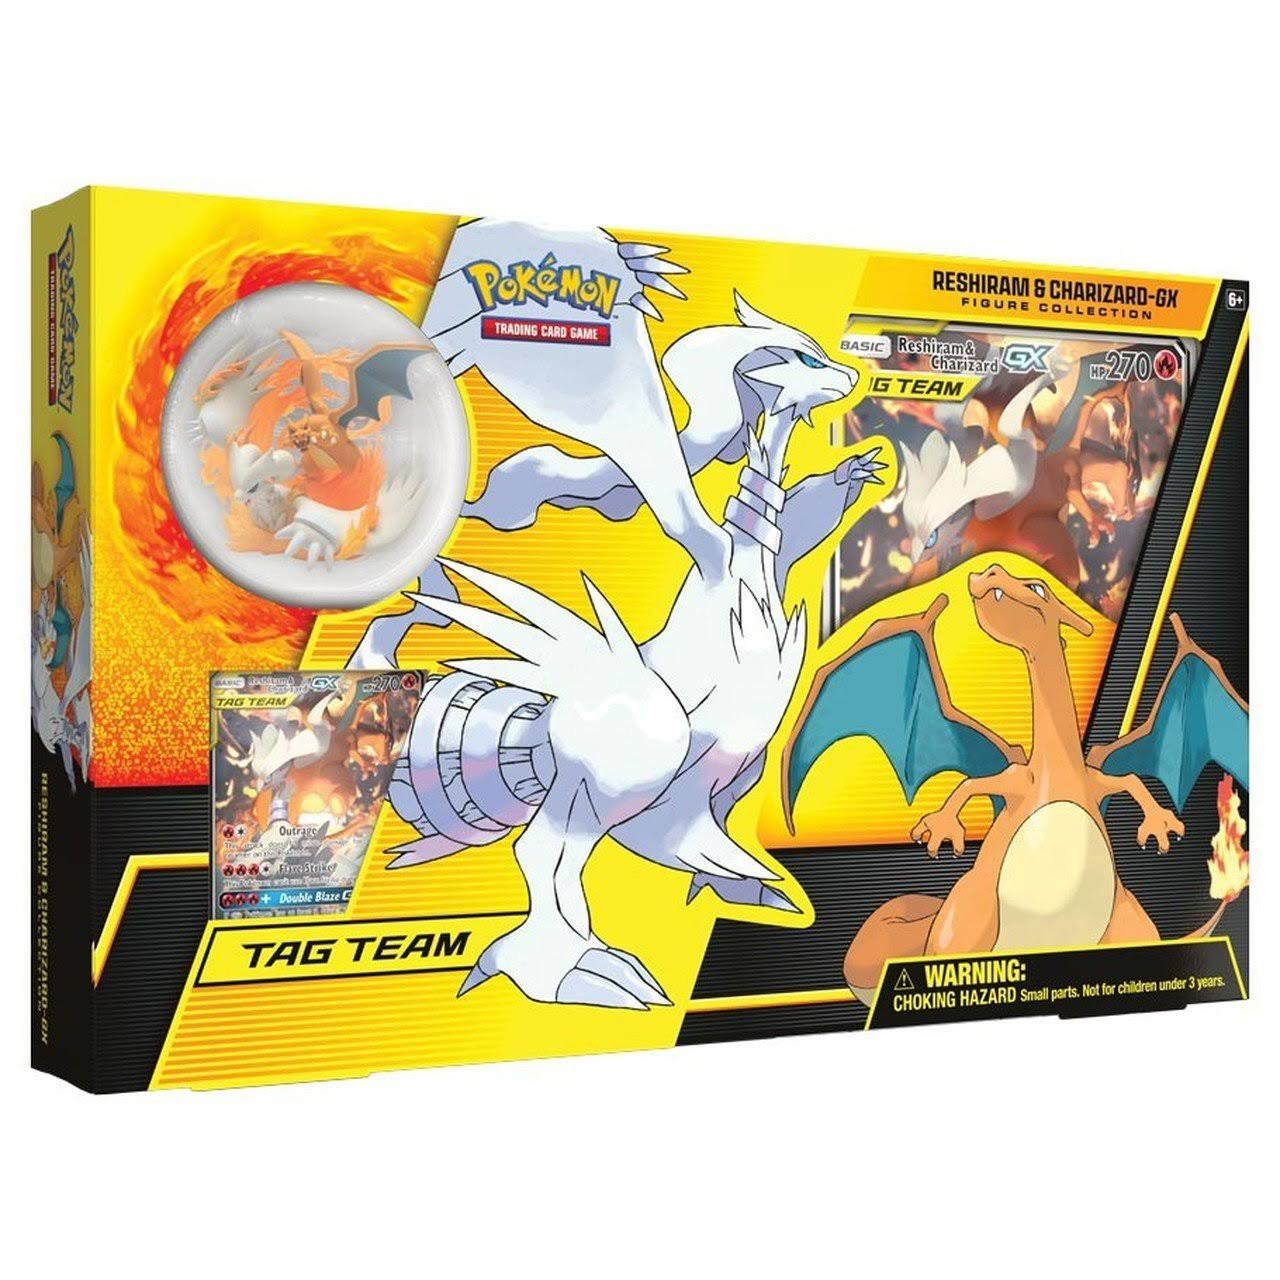 Pokemon TCG: Reshiram and Charizard-GX Figure